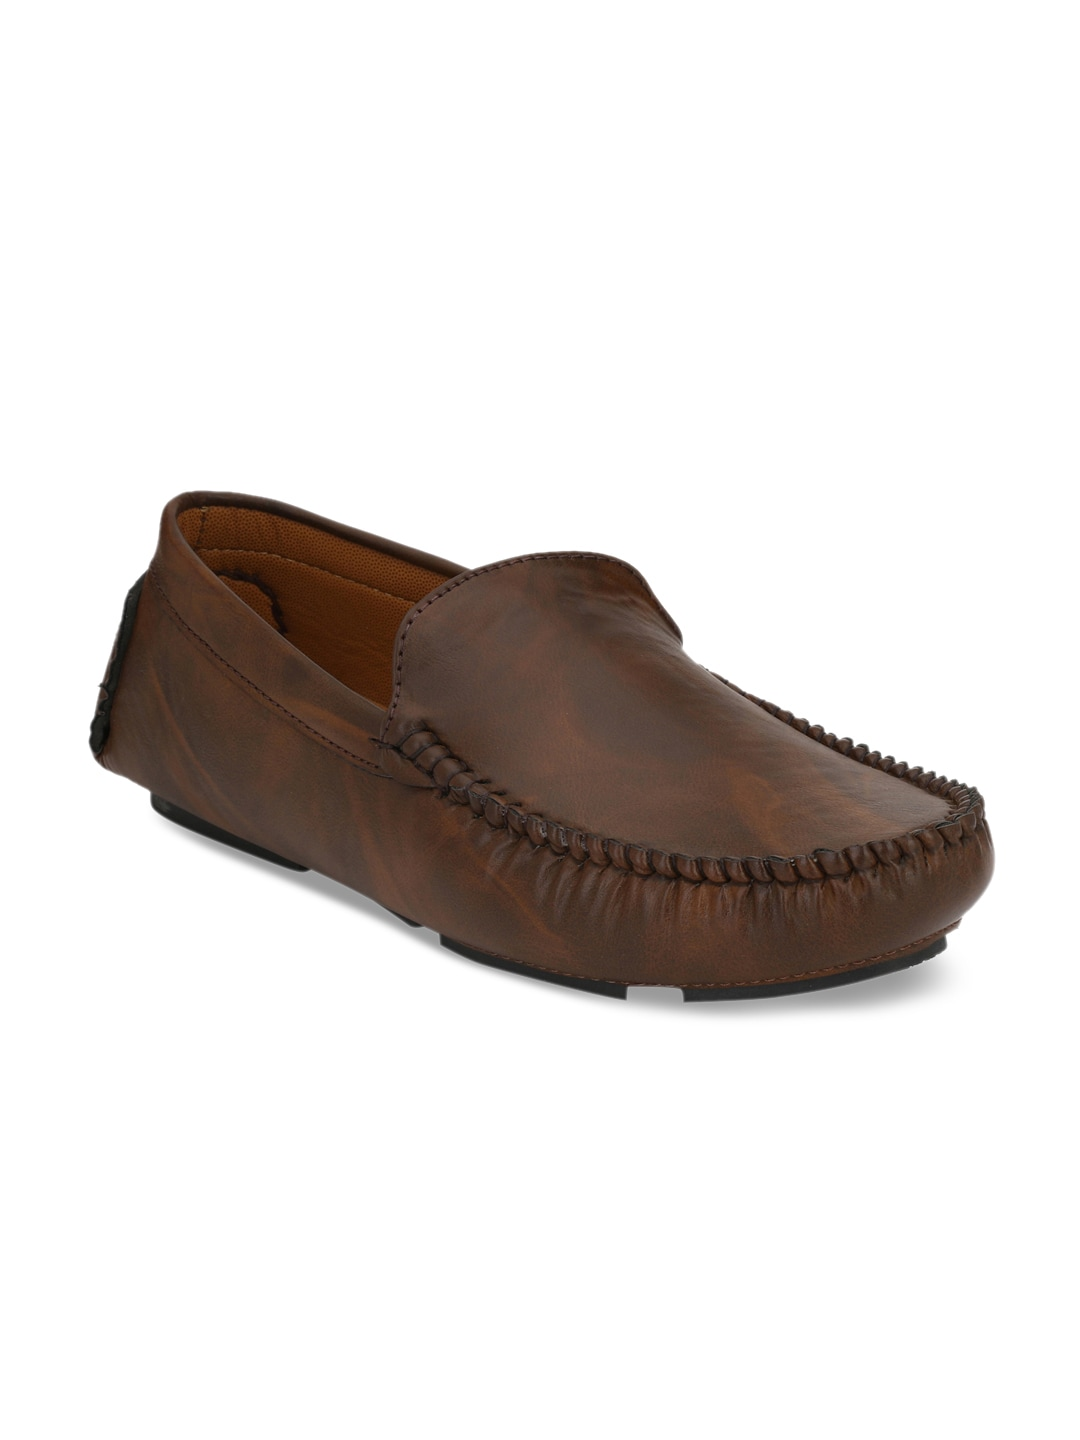 24831daf60 Loafers Shoes For Men - Buy Loafers Shoes For Men online in India